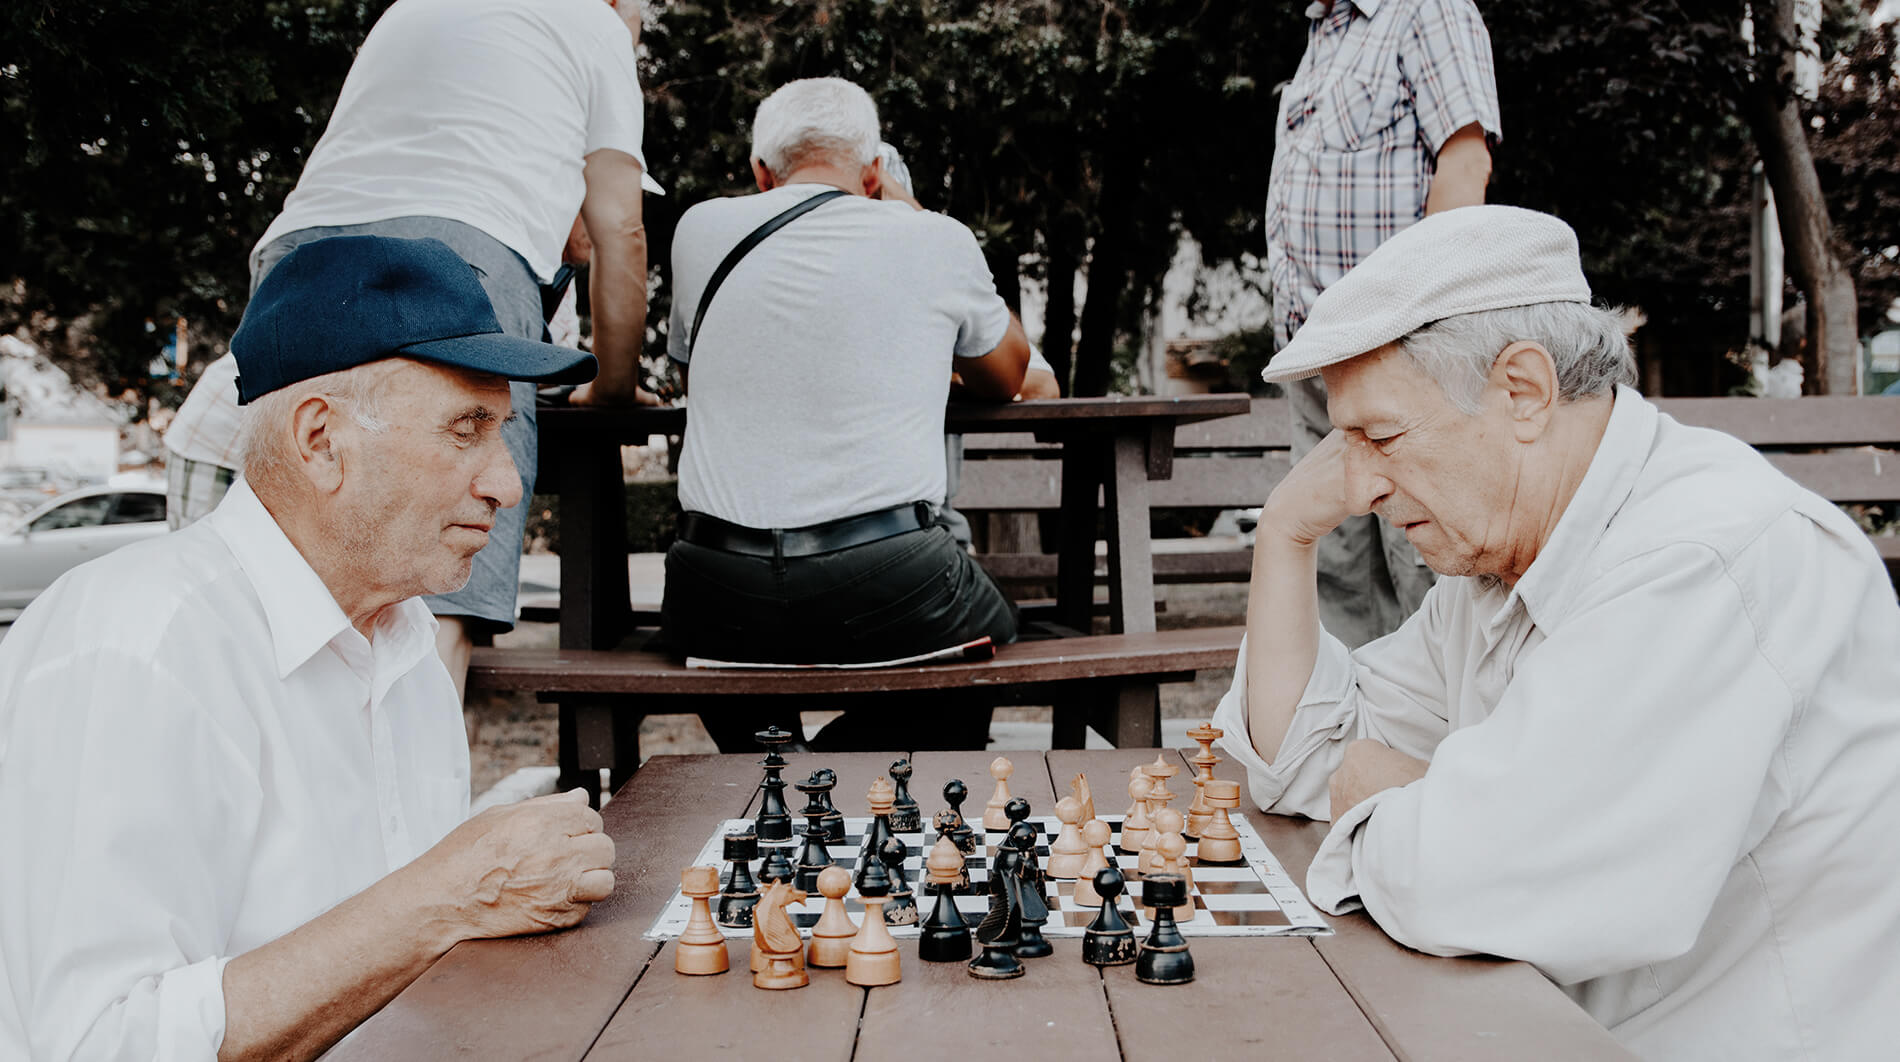 Two senior citizens playing chess in the park